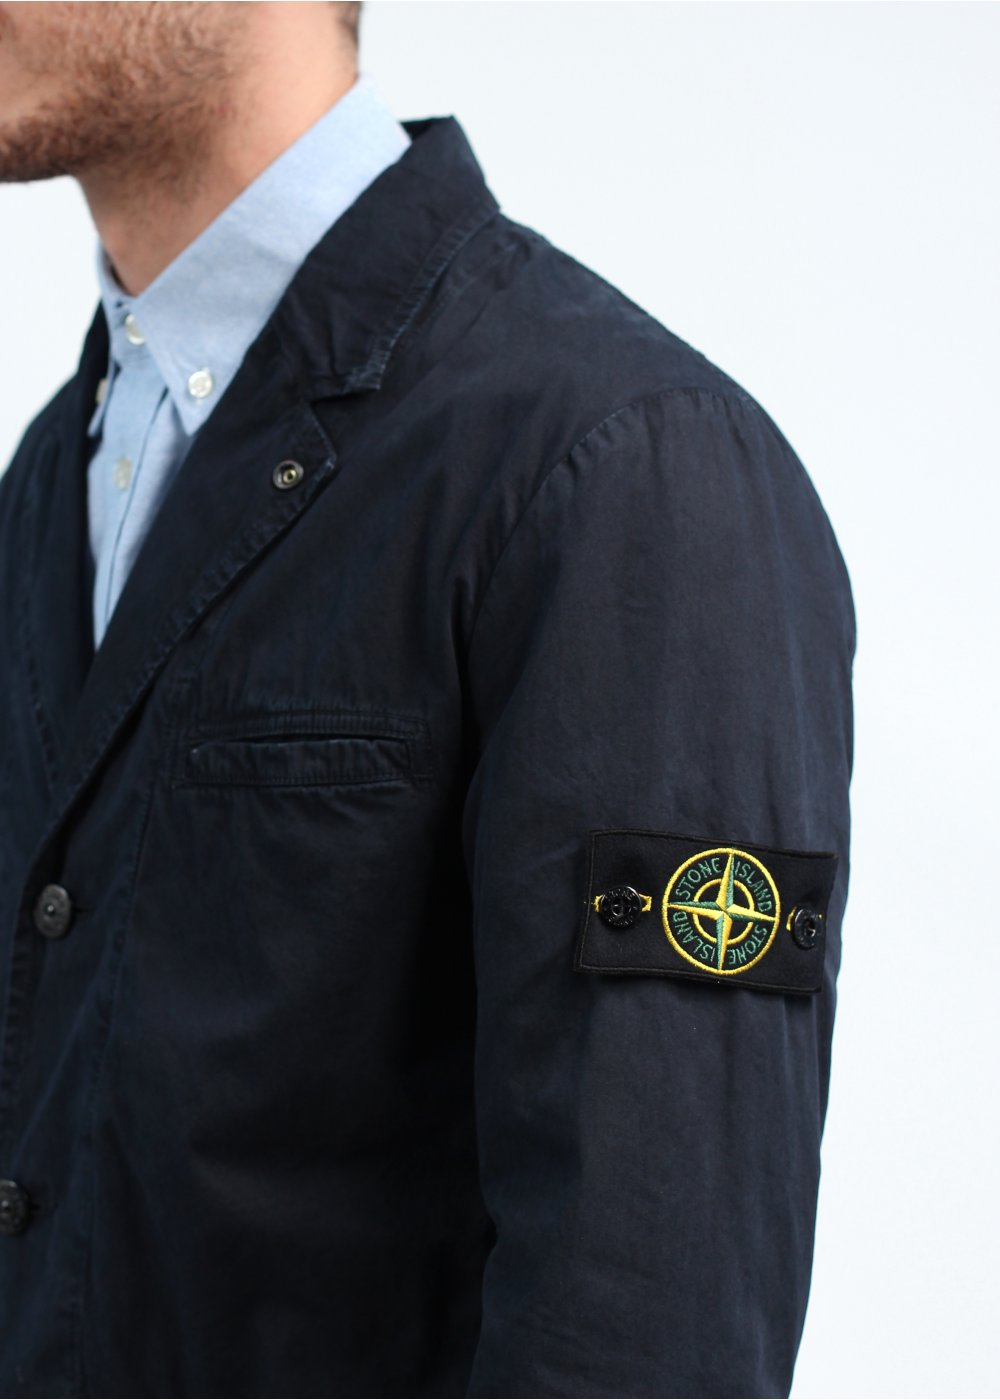 stone island windbreaker. Black Bedroom Furniture Sets. Home Design Ideas